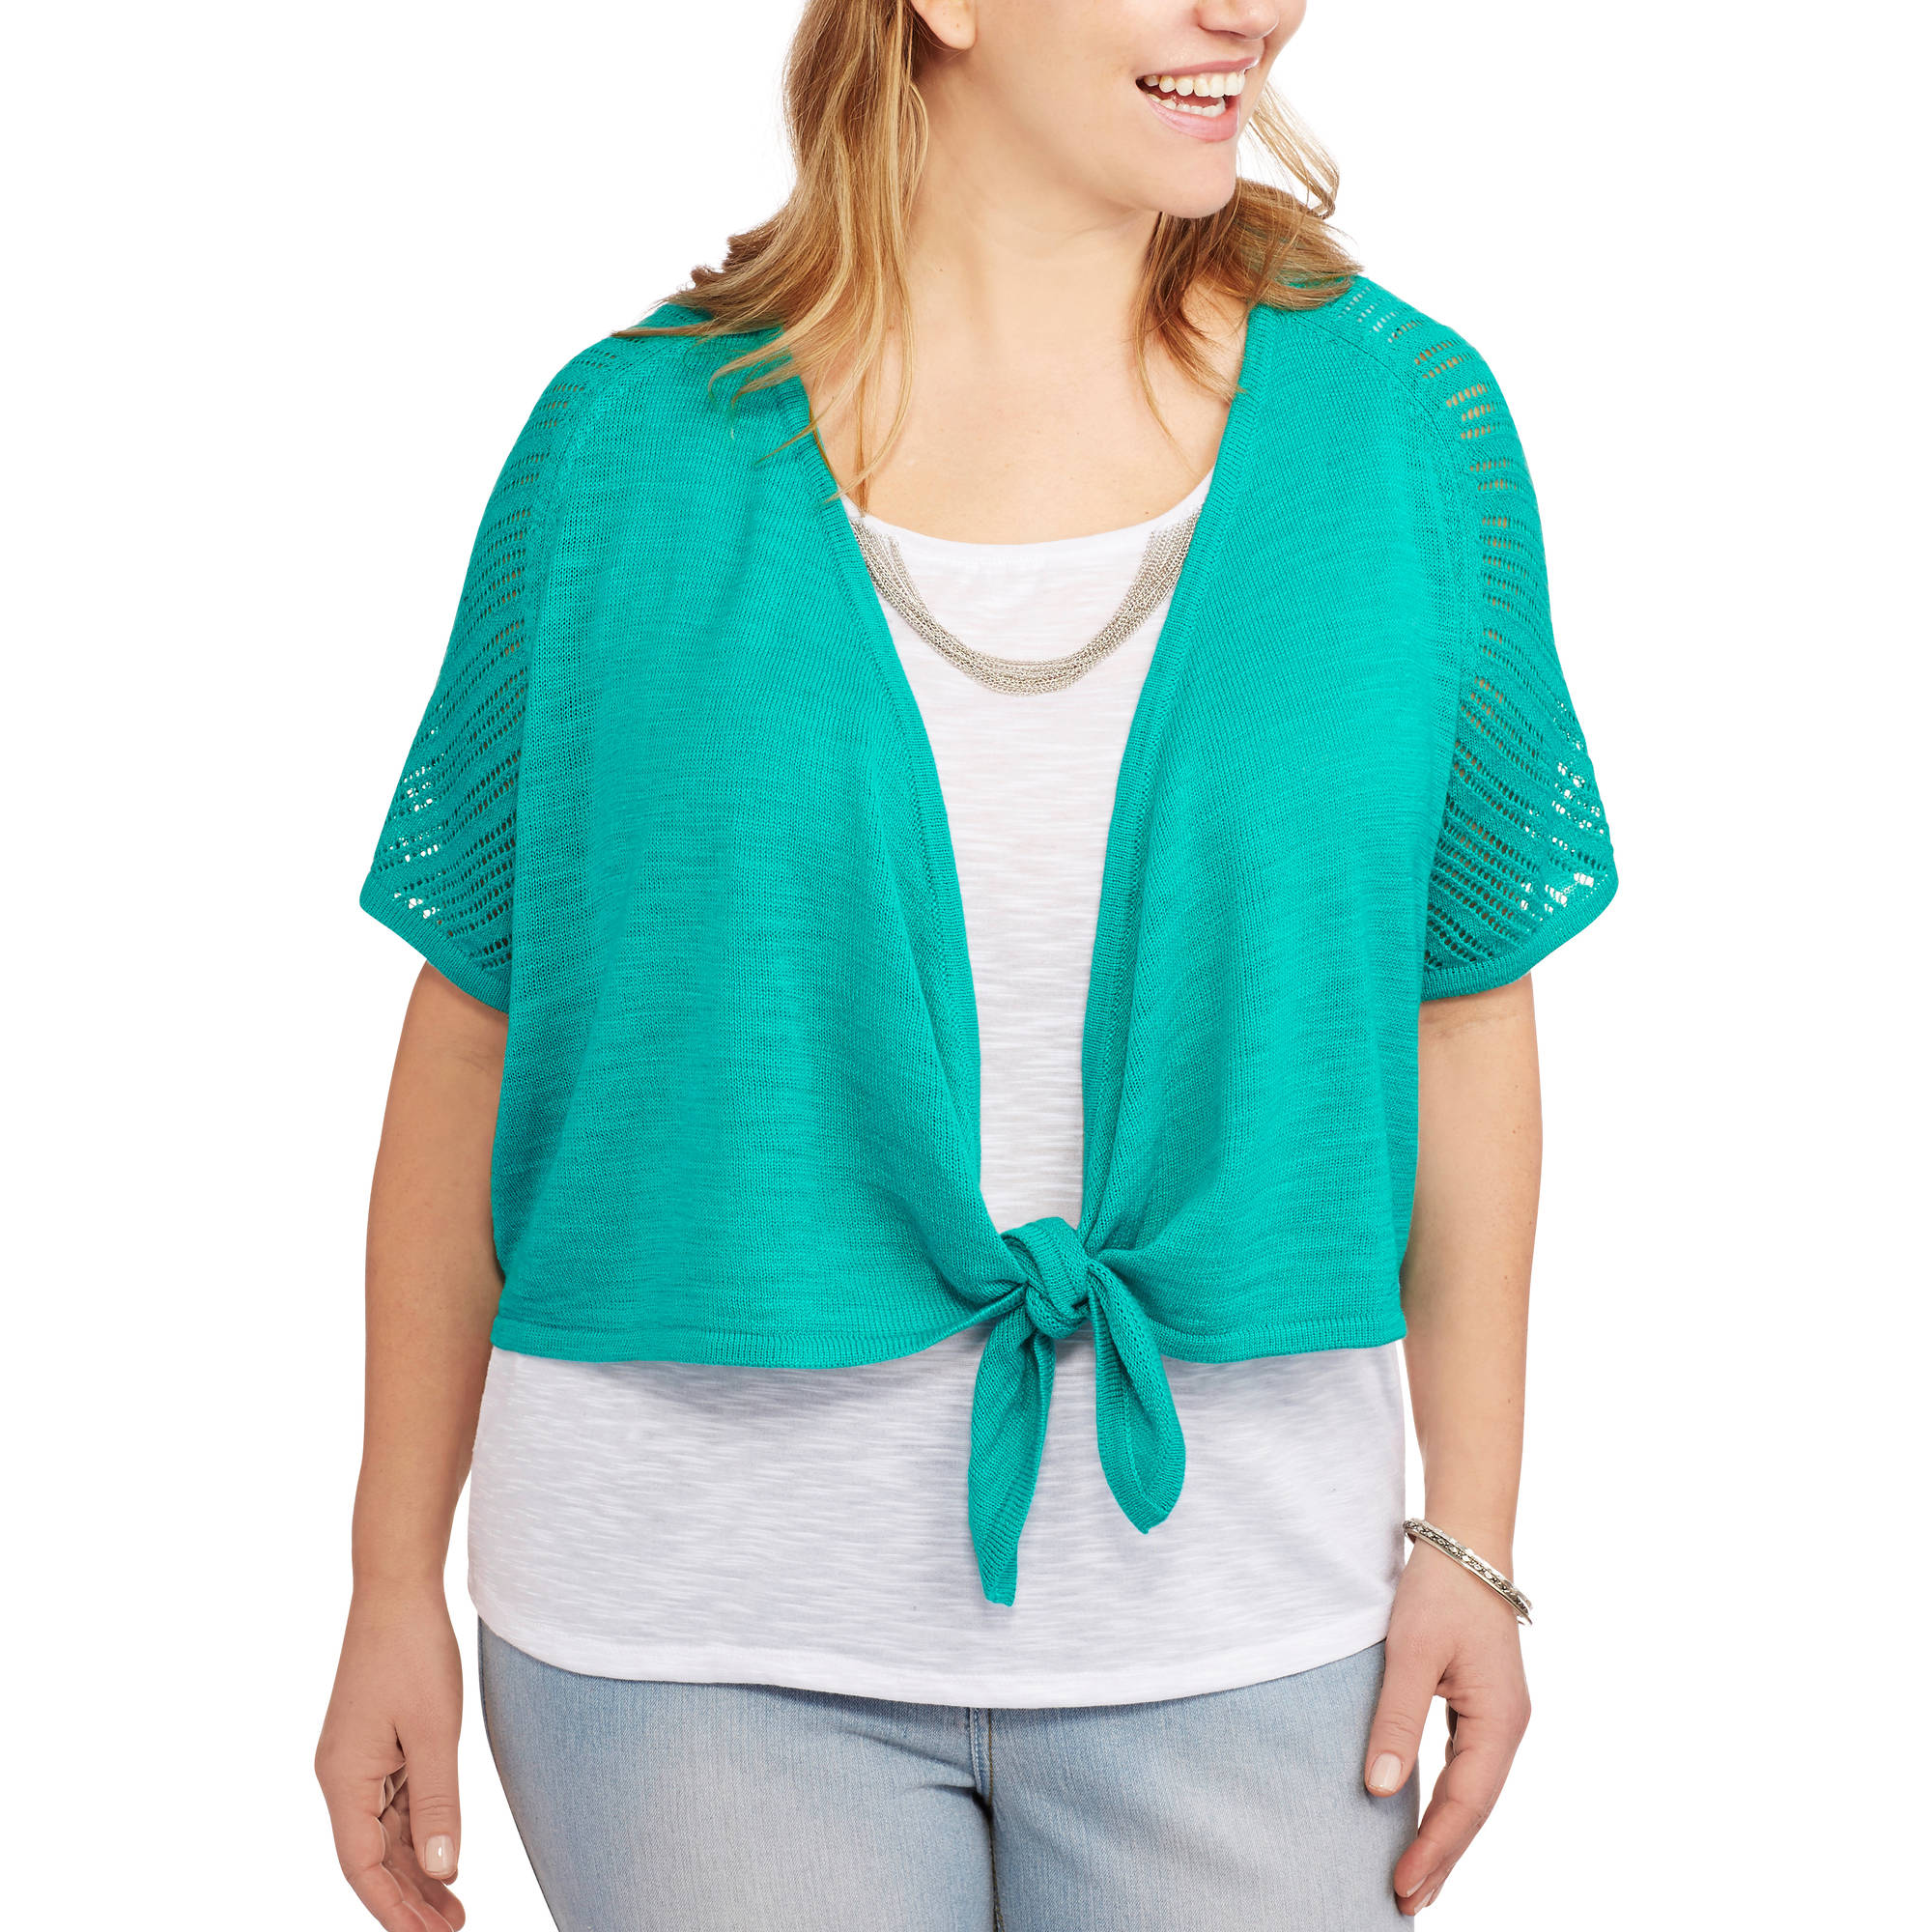 Faded Glory Women's Plus-Size Tie-Front Shrug